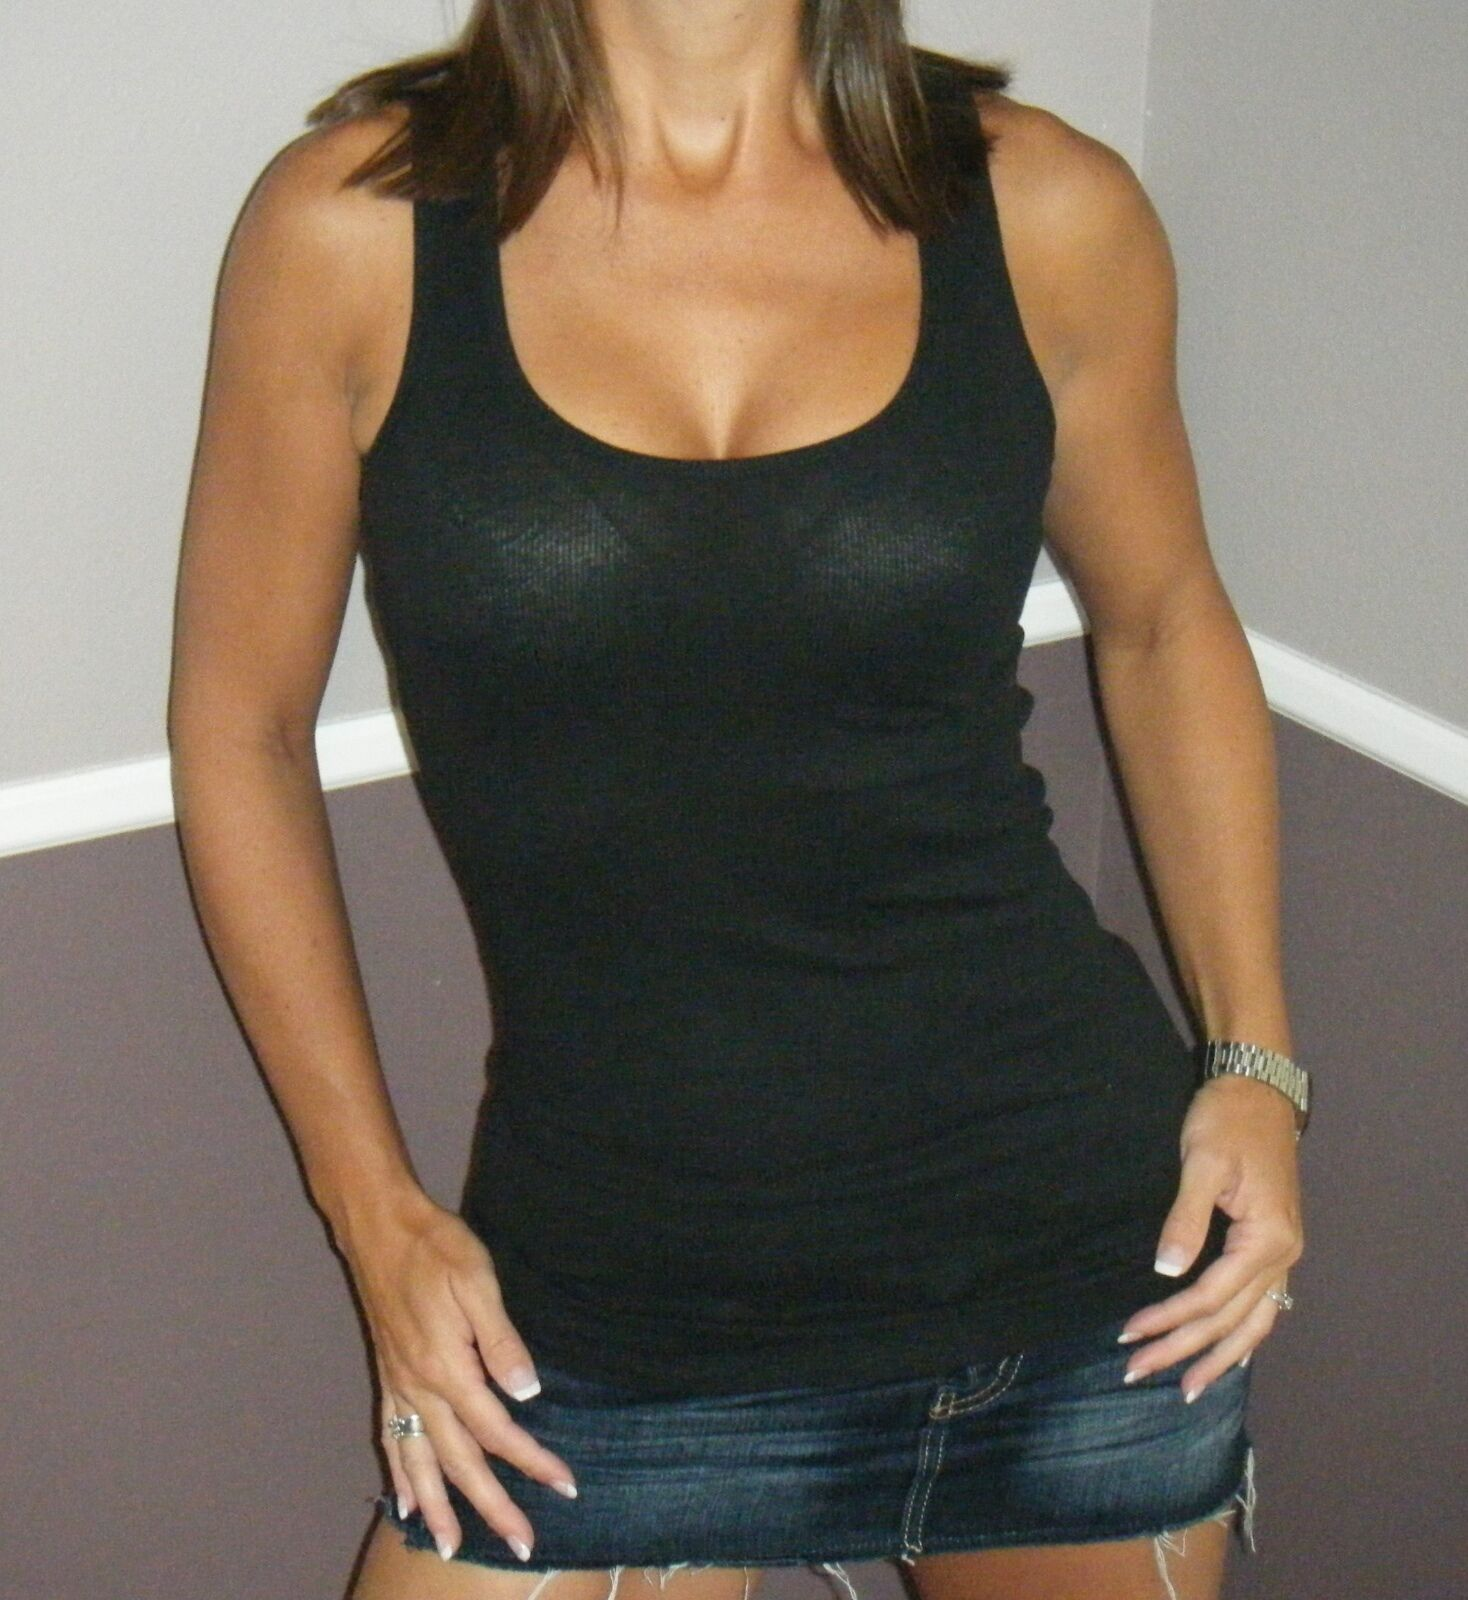 Very Sexy Ribbed Low Cut Scoop Boy Beater Cleavage Fitted Tank Top Black S/M/L